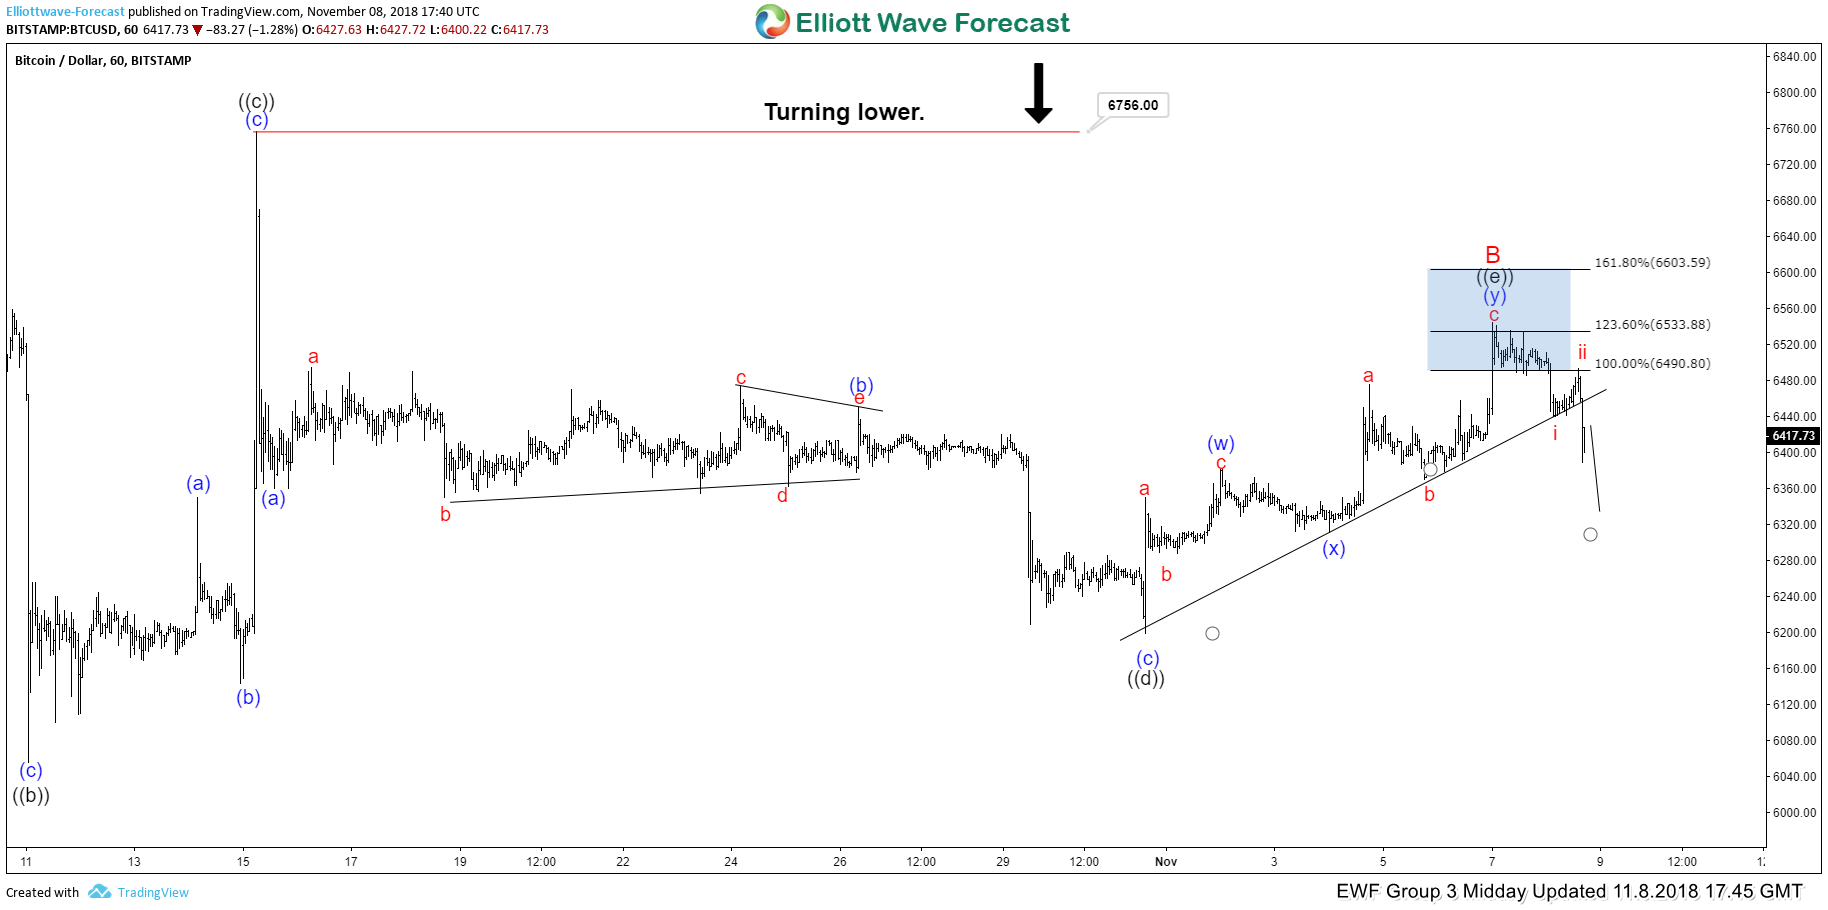 Bitcoin Elliott Wave View: Reacting lower From Blue Box